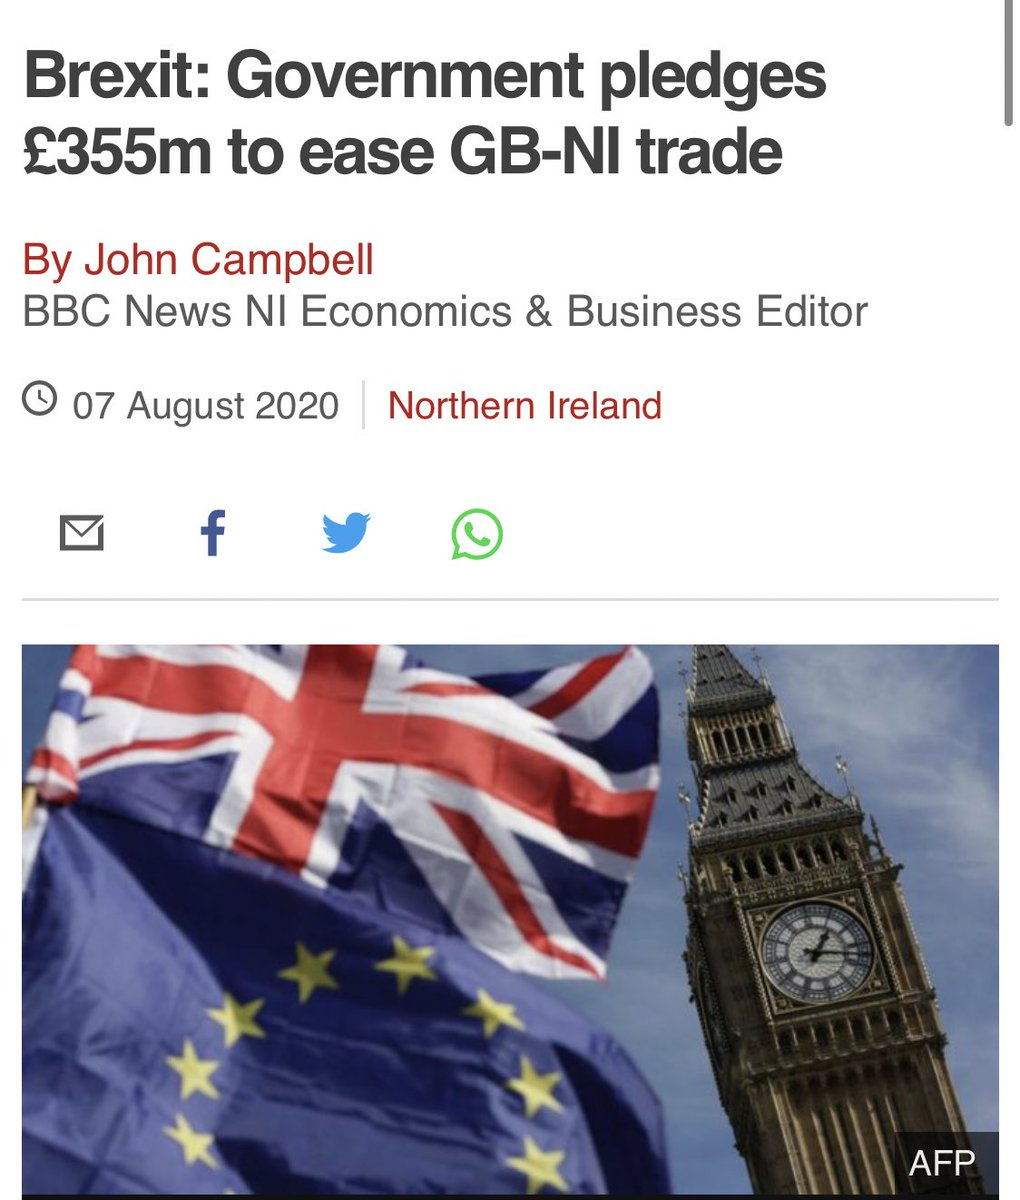 Can't wait to spend all this money we're saving from Brexit on the NHS. #BrexitDividend